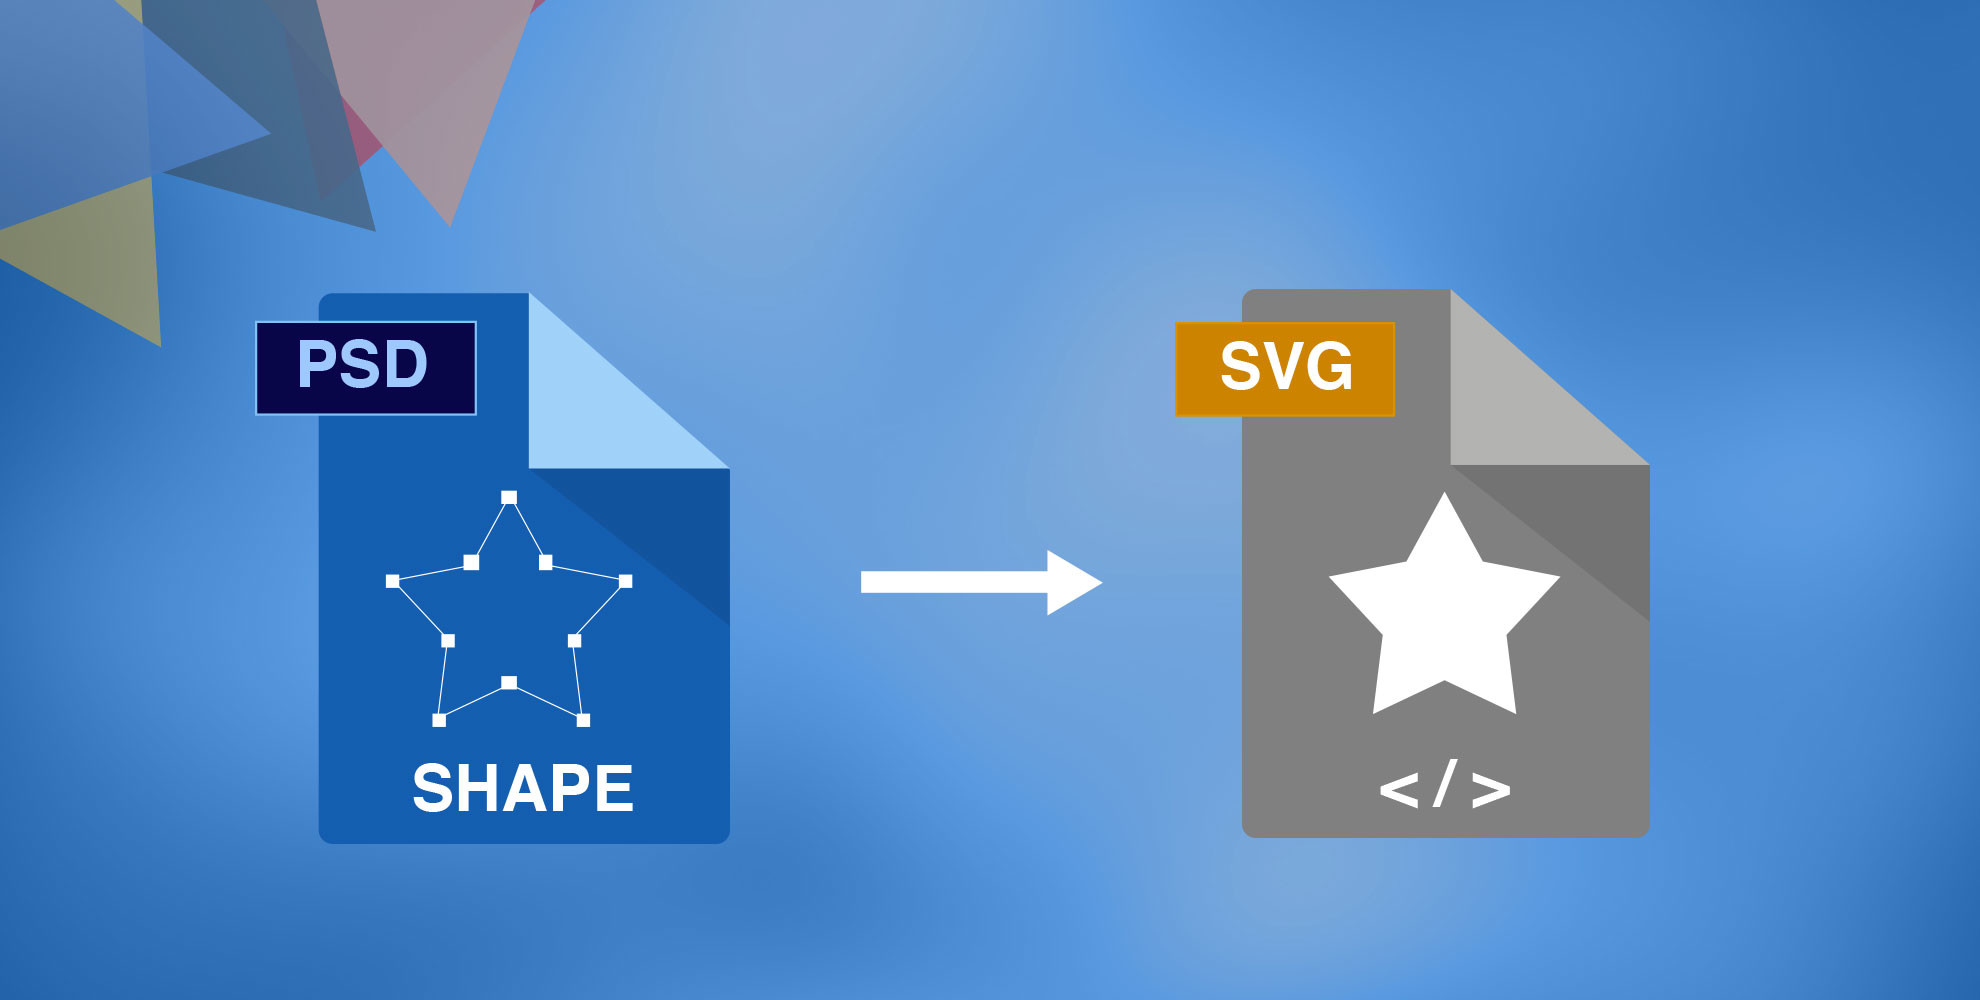 Free script: Export your layers from photoshop to SVG in a